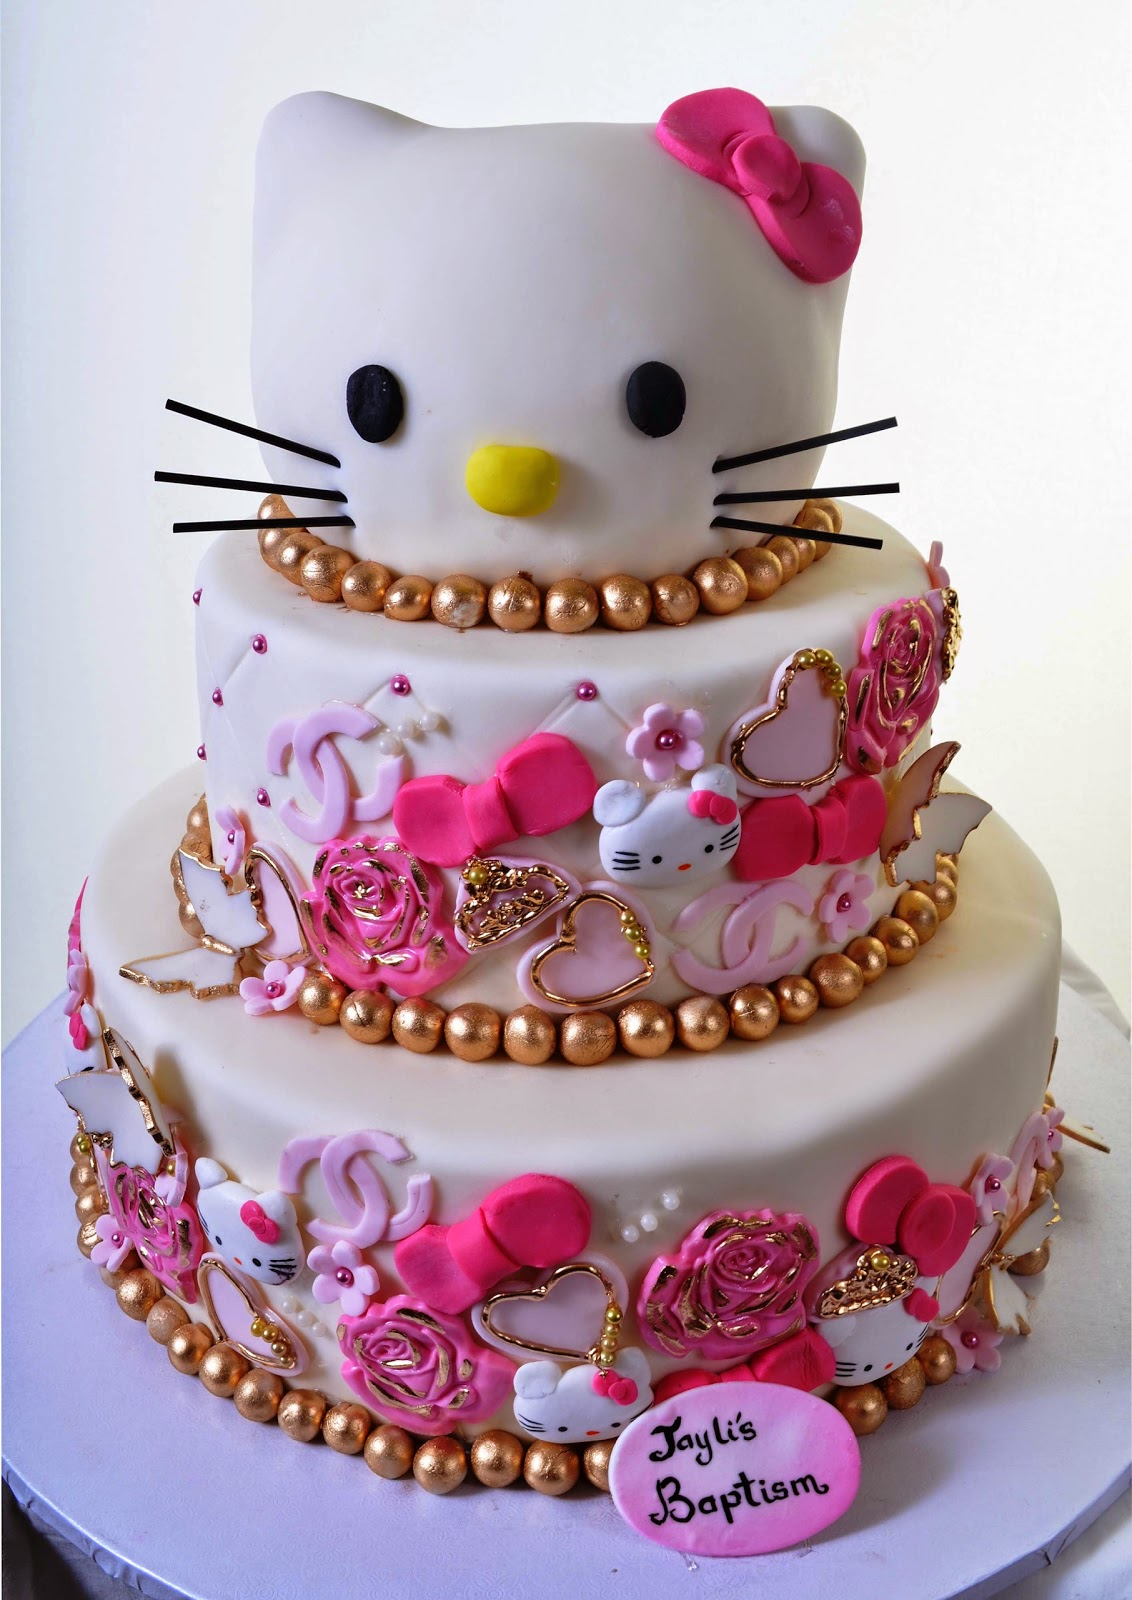 ... talking about follows example a birthday cake sweet hello kitty shape